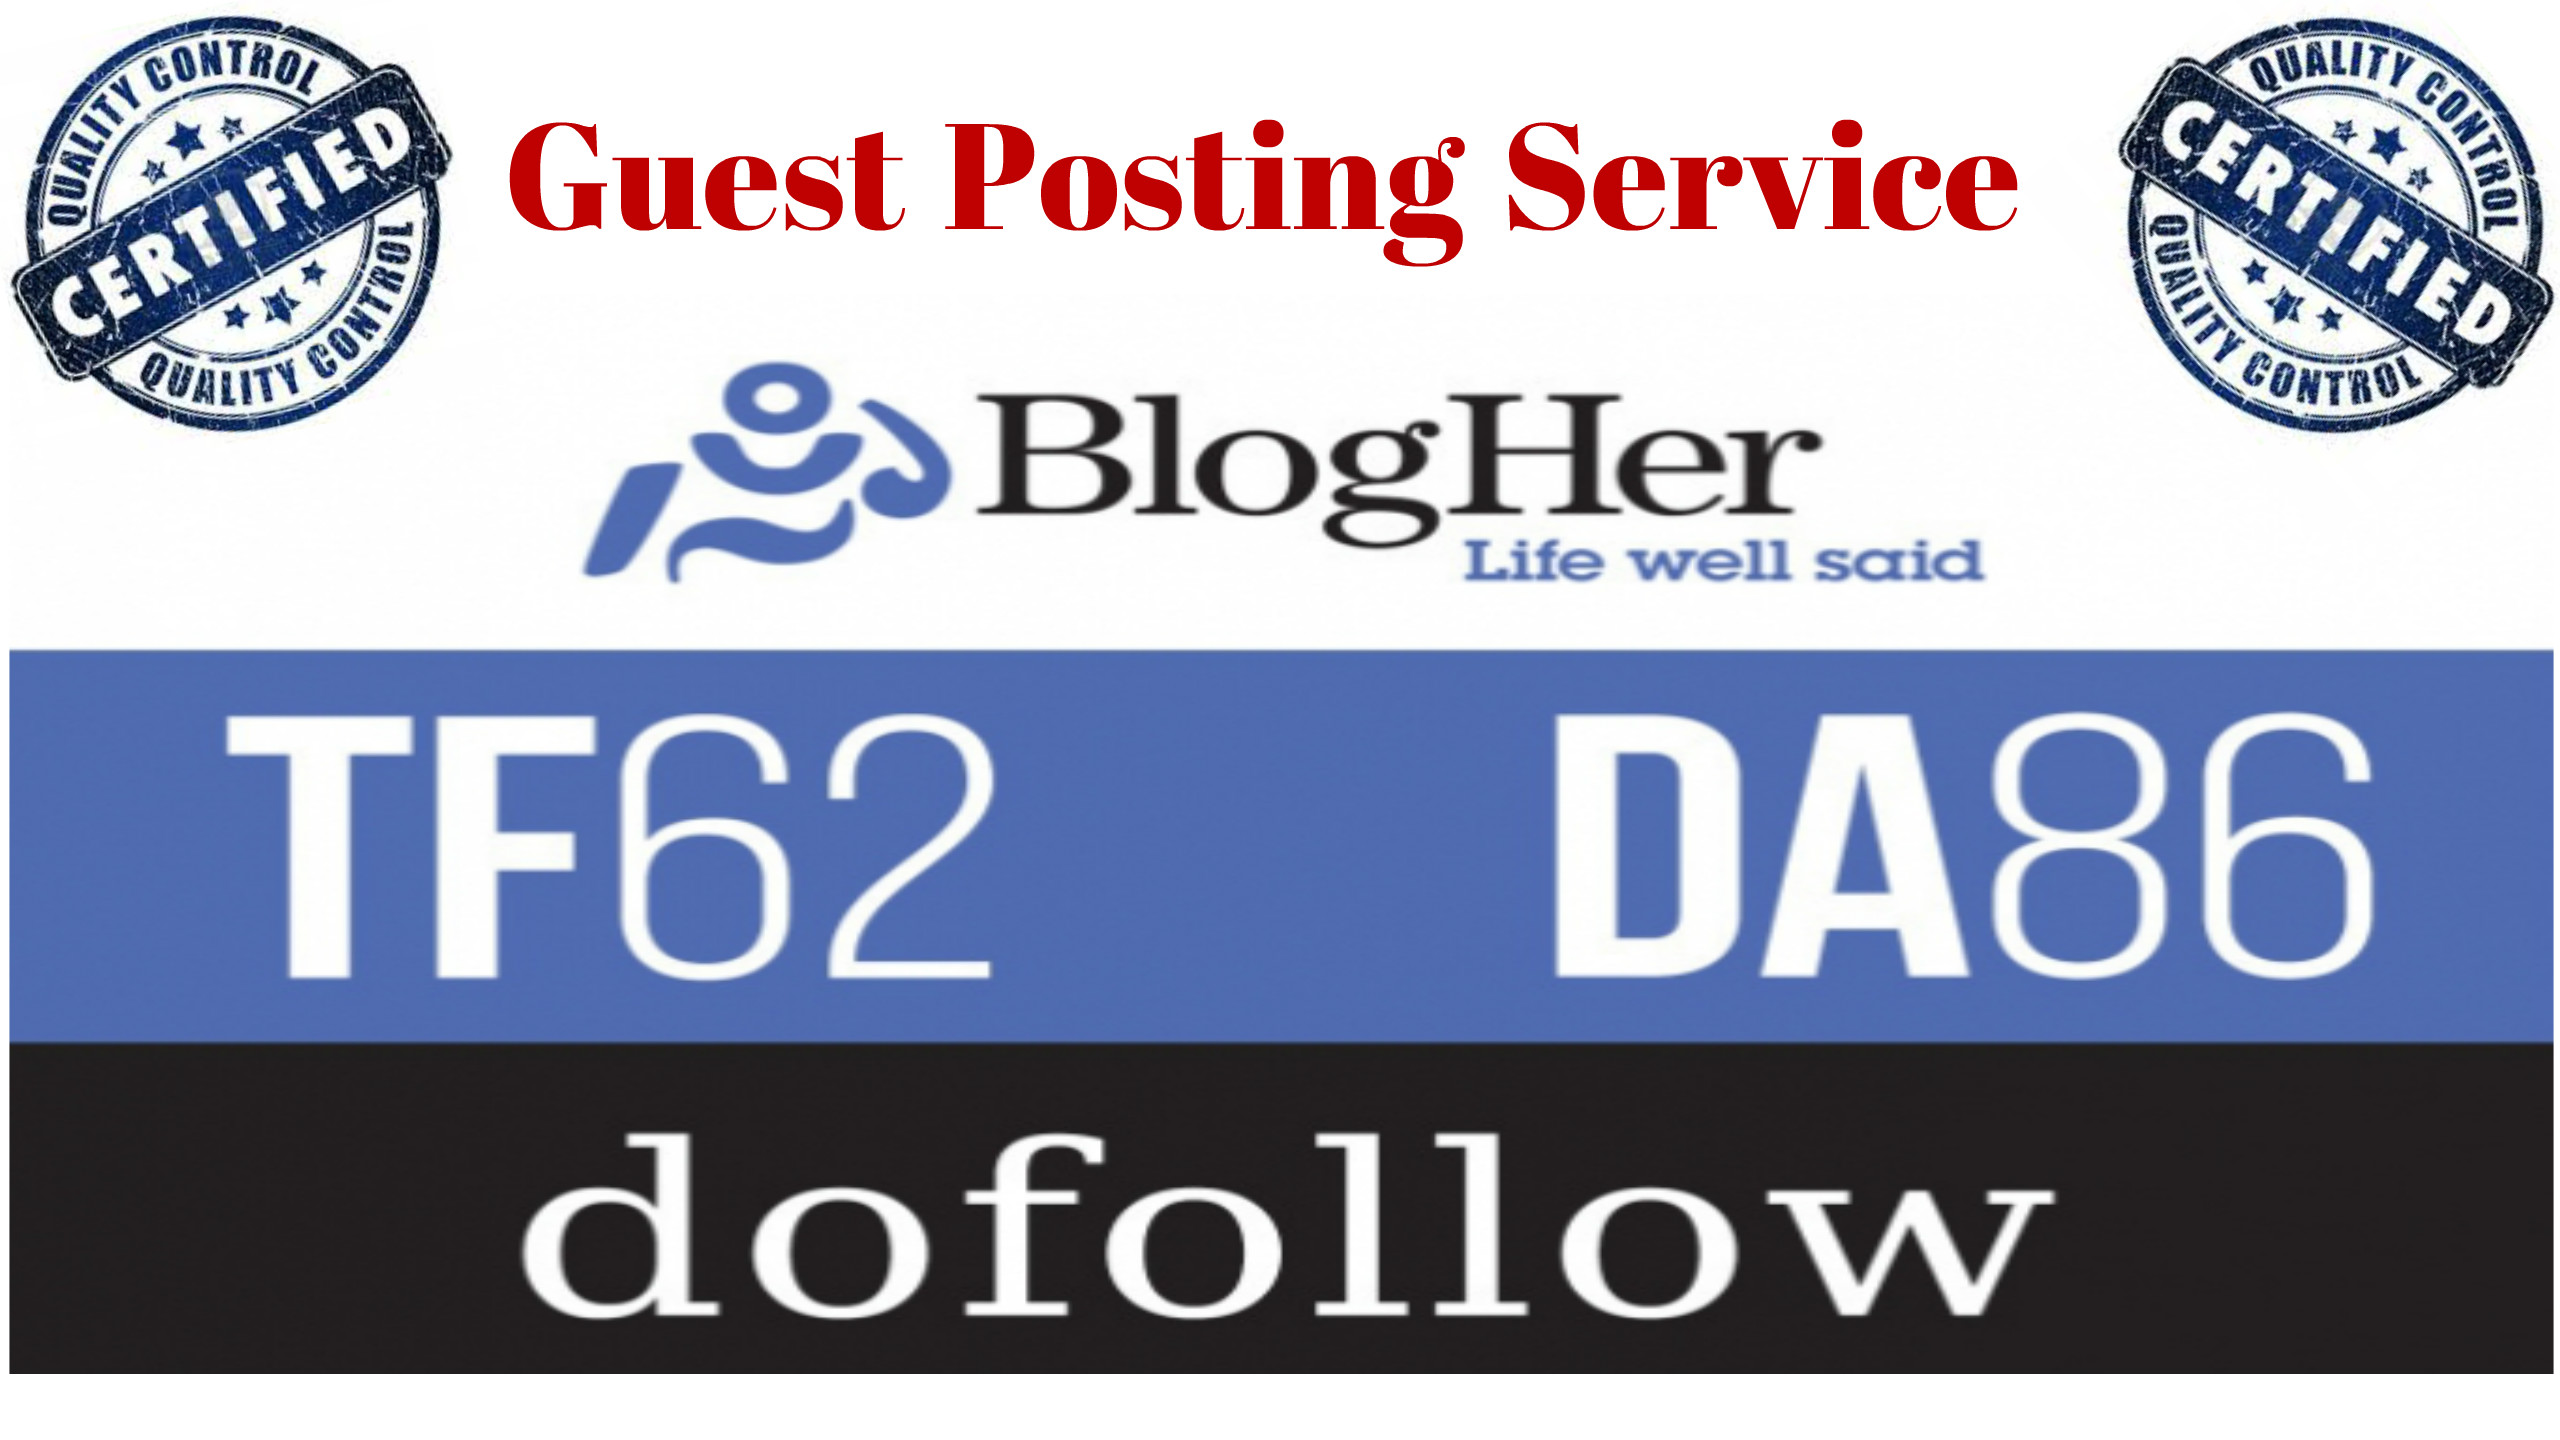 Will publish a Guest Post on Blogher